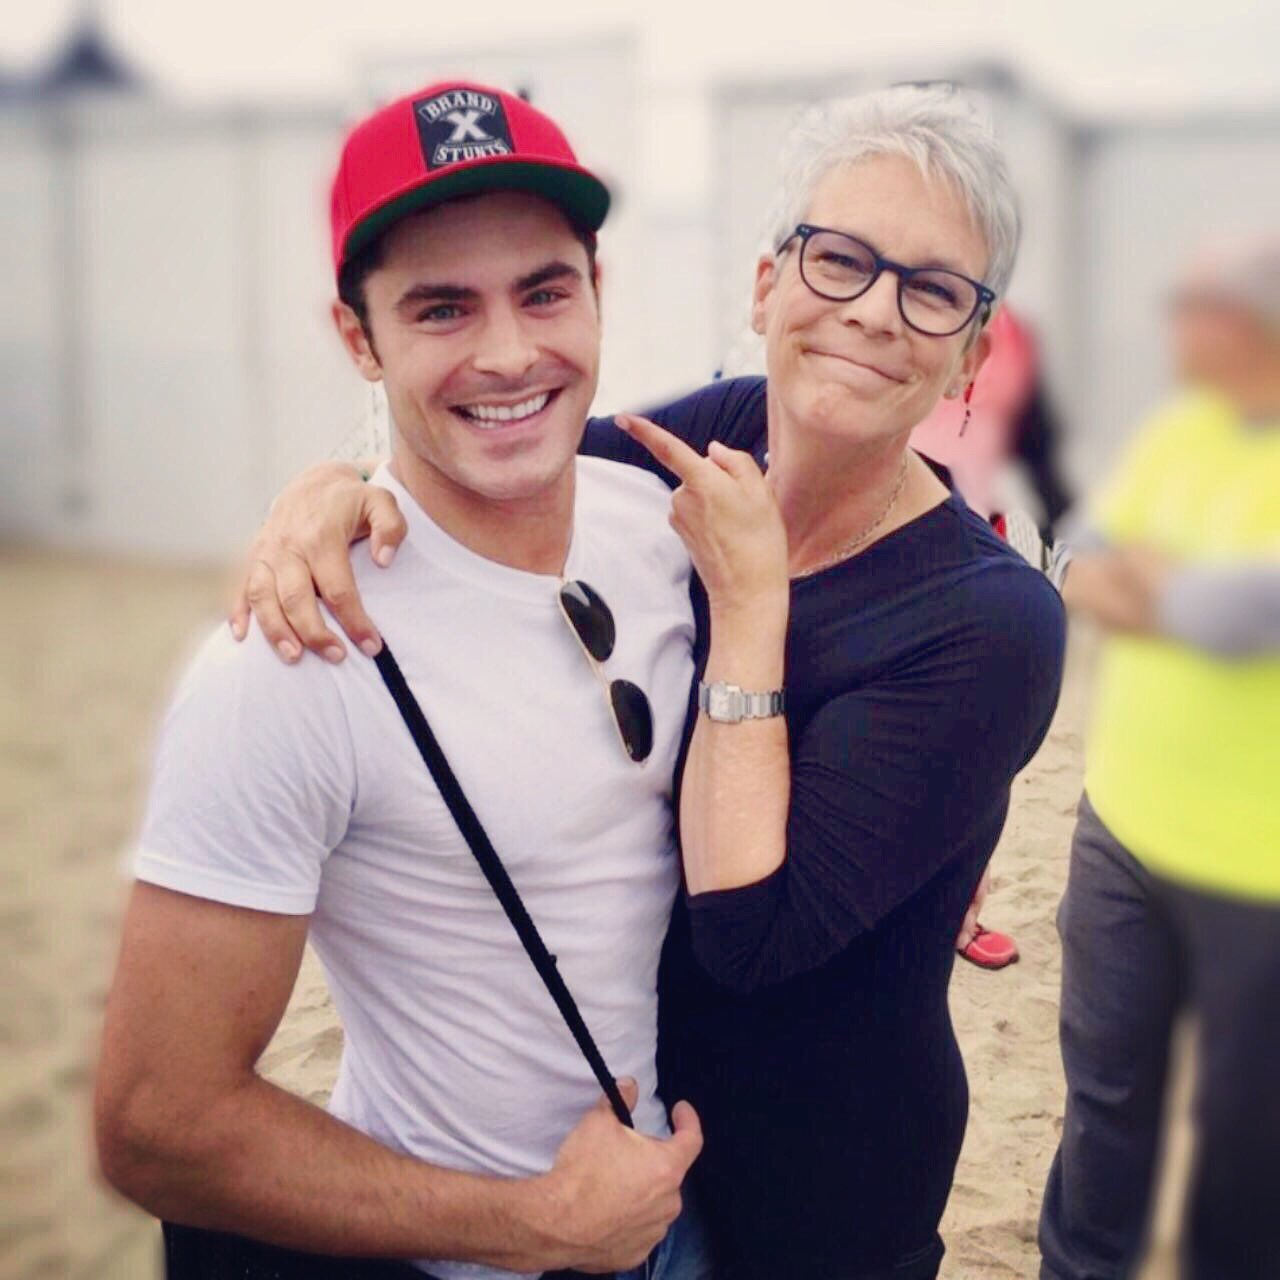 Does Zac Efron Have A Role In The New Halloween?